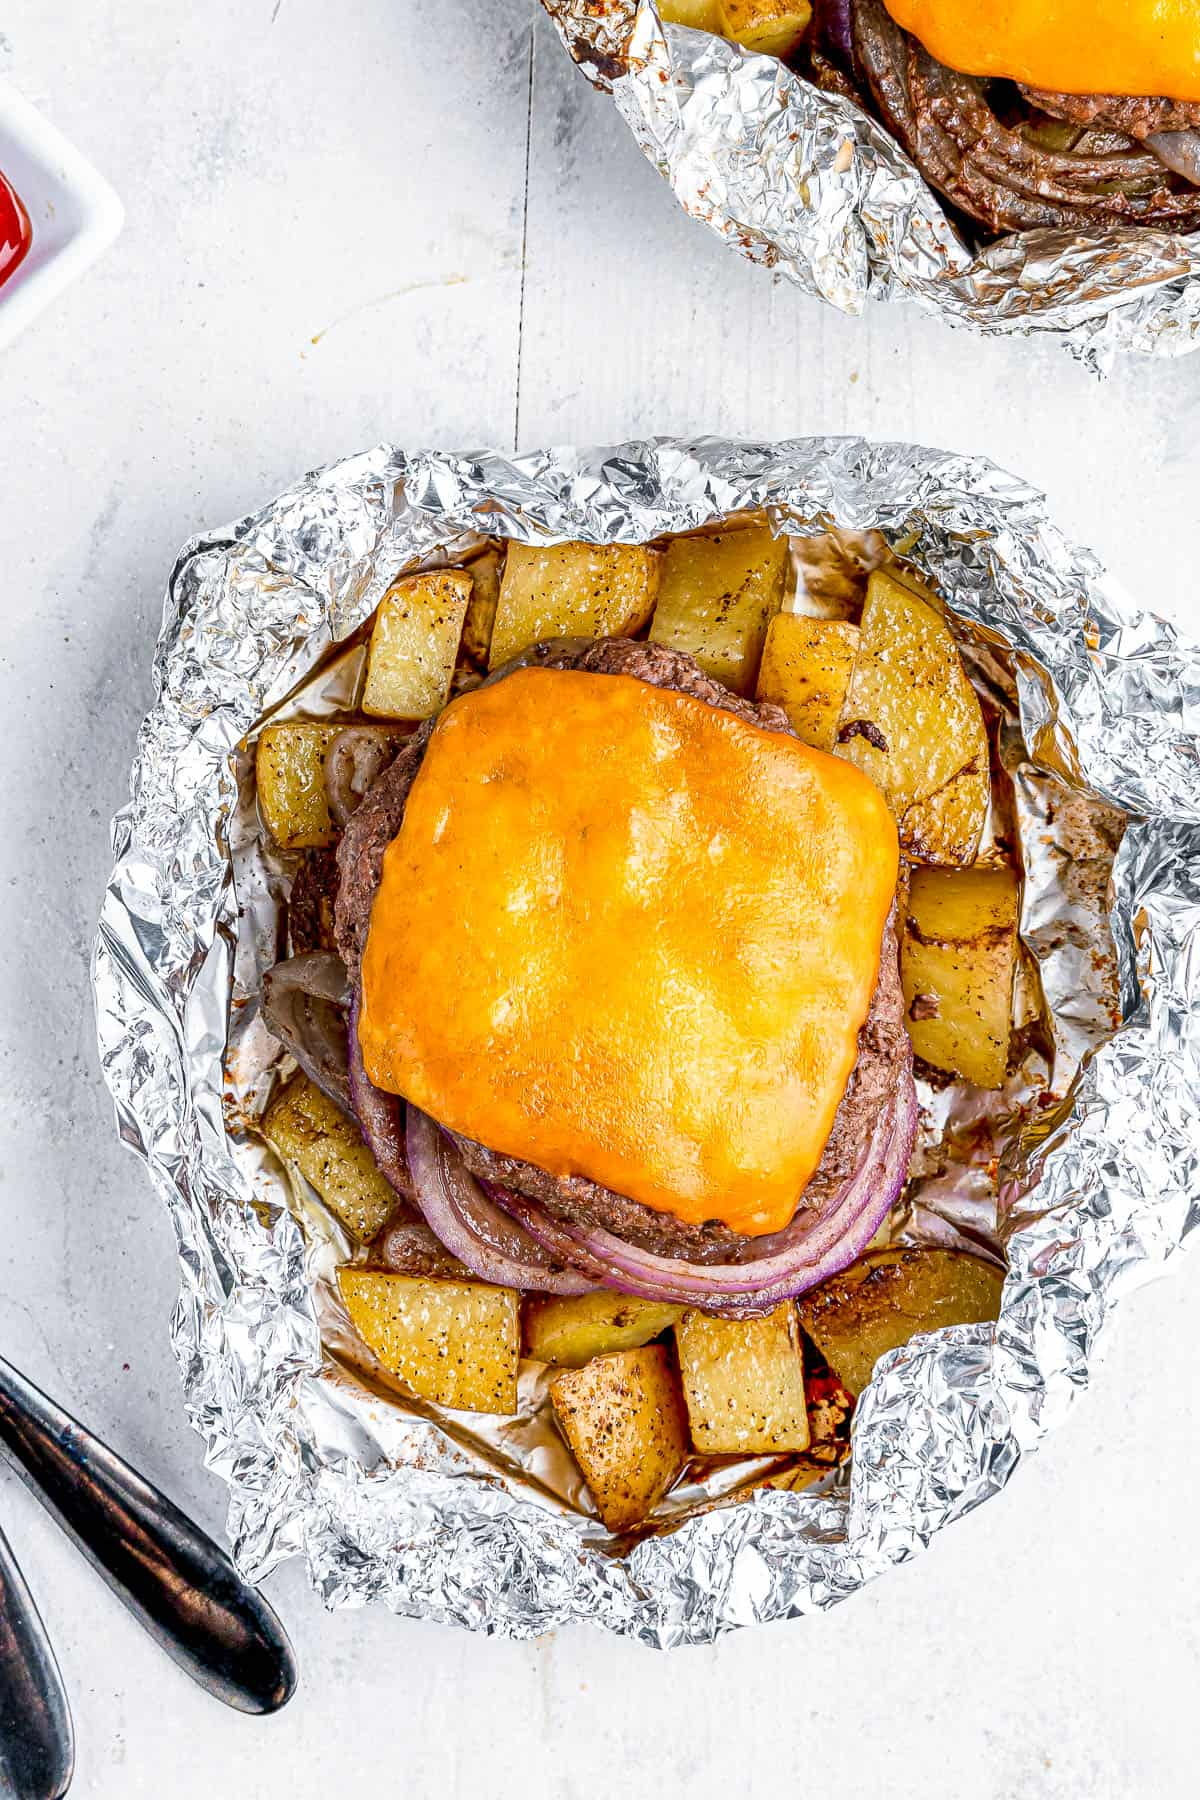 Two cheeseburgers in foil with potatoes